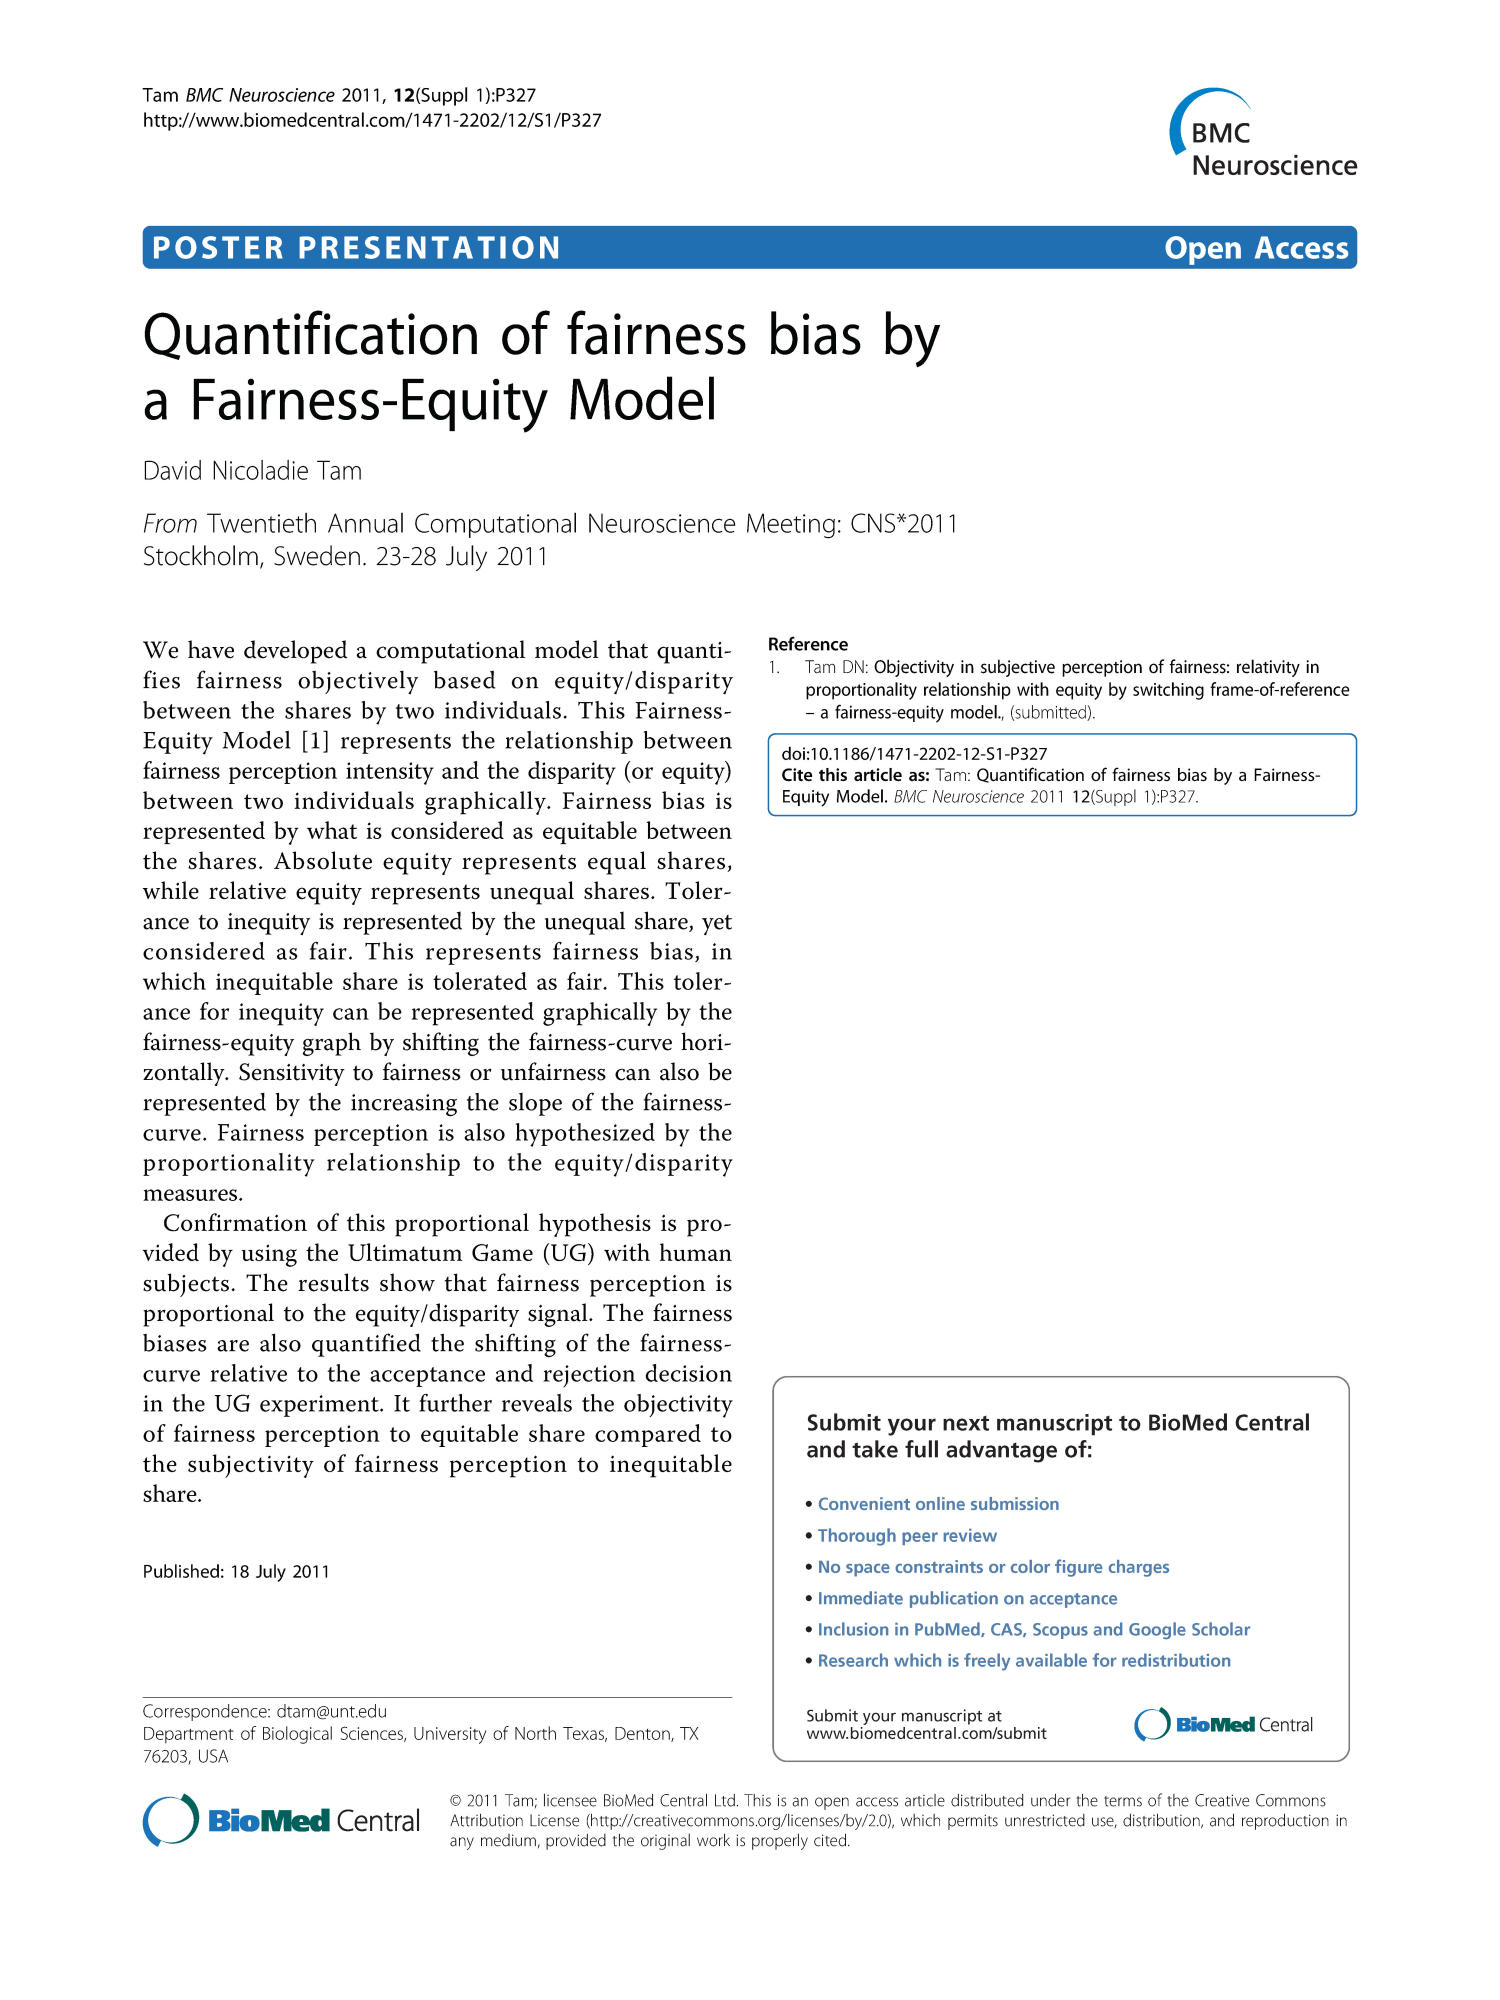 Quantification of fairness bias by a fairness-equity model                                                                                                      1